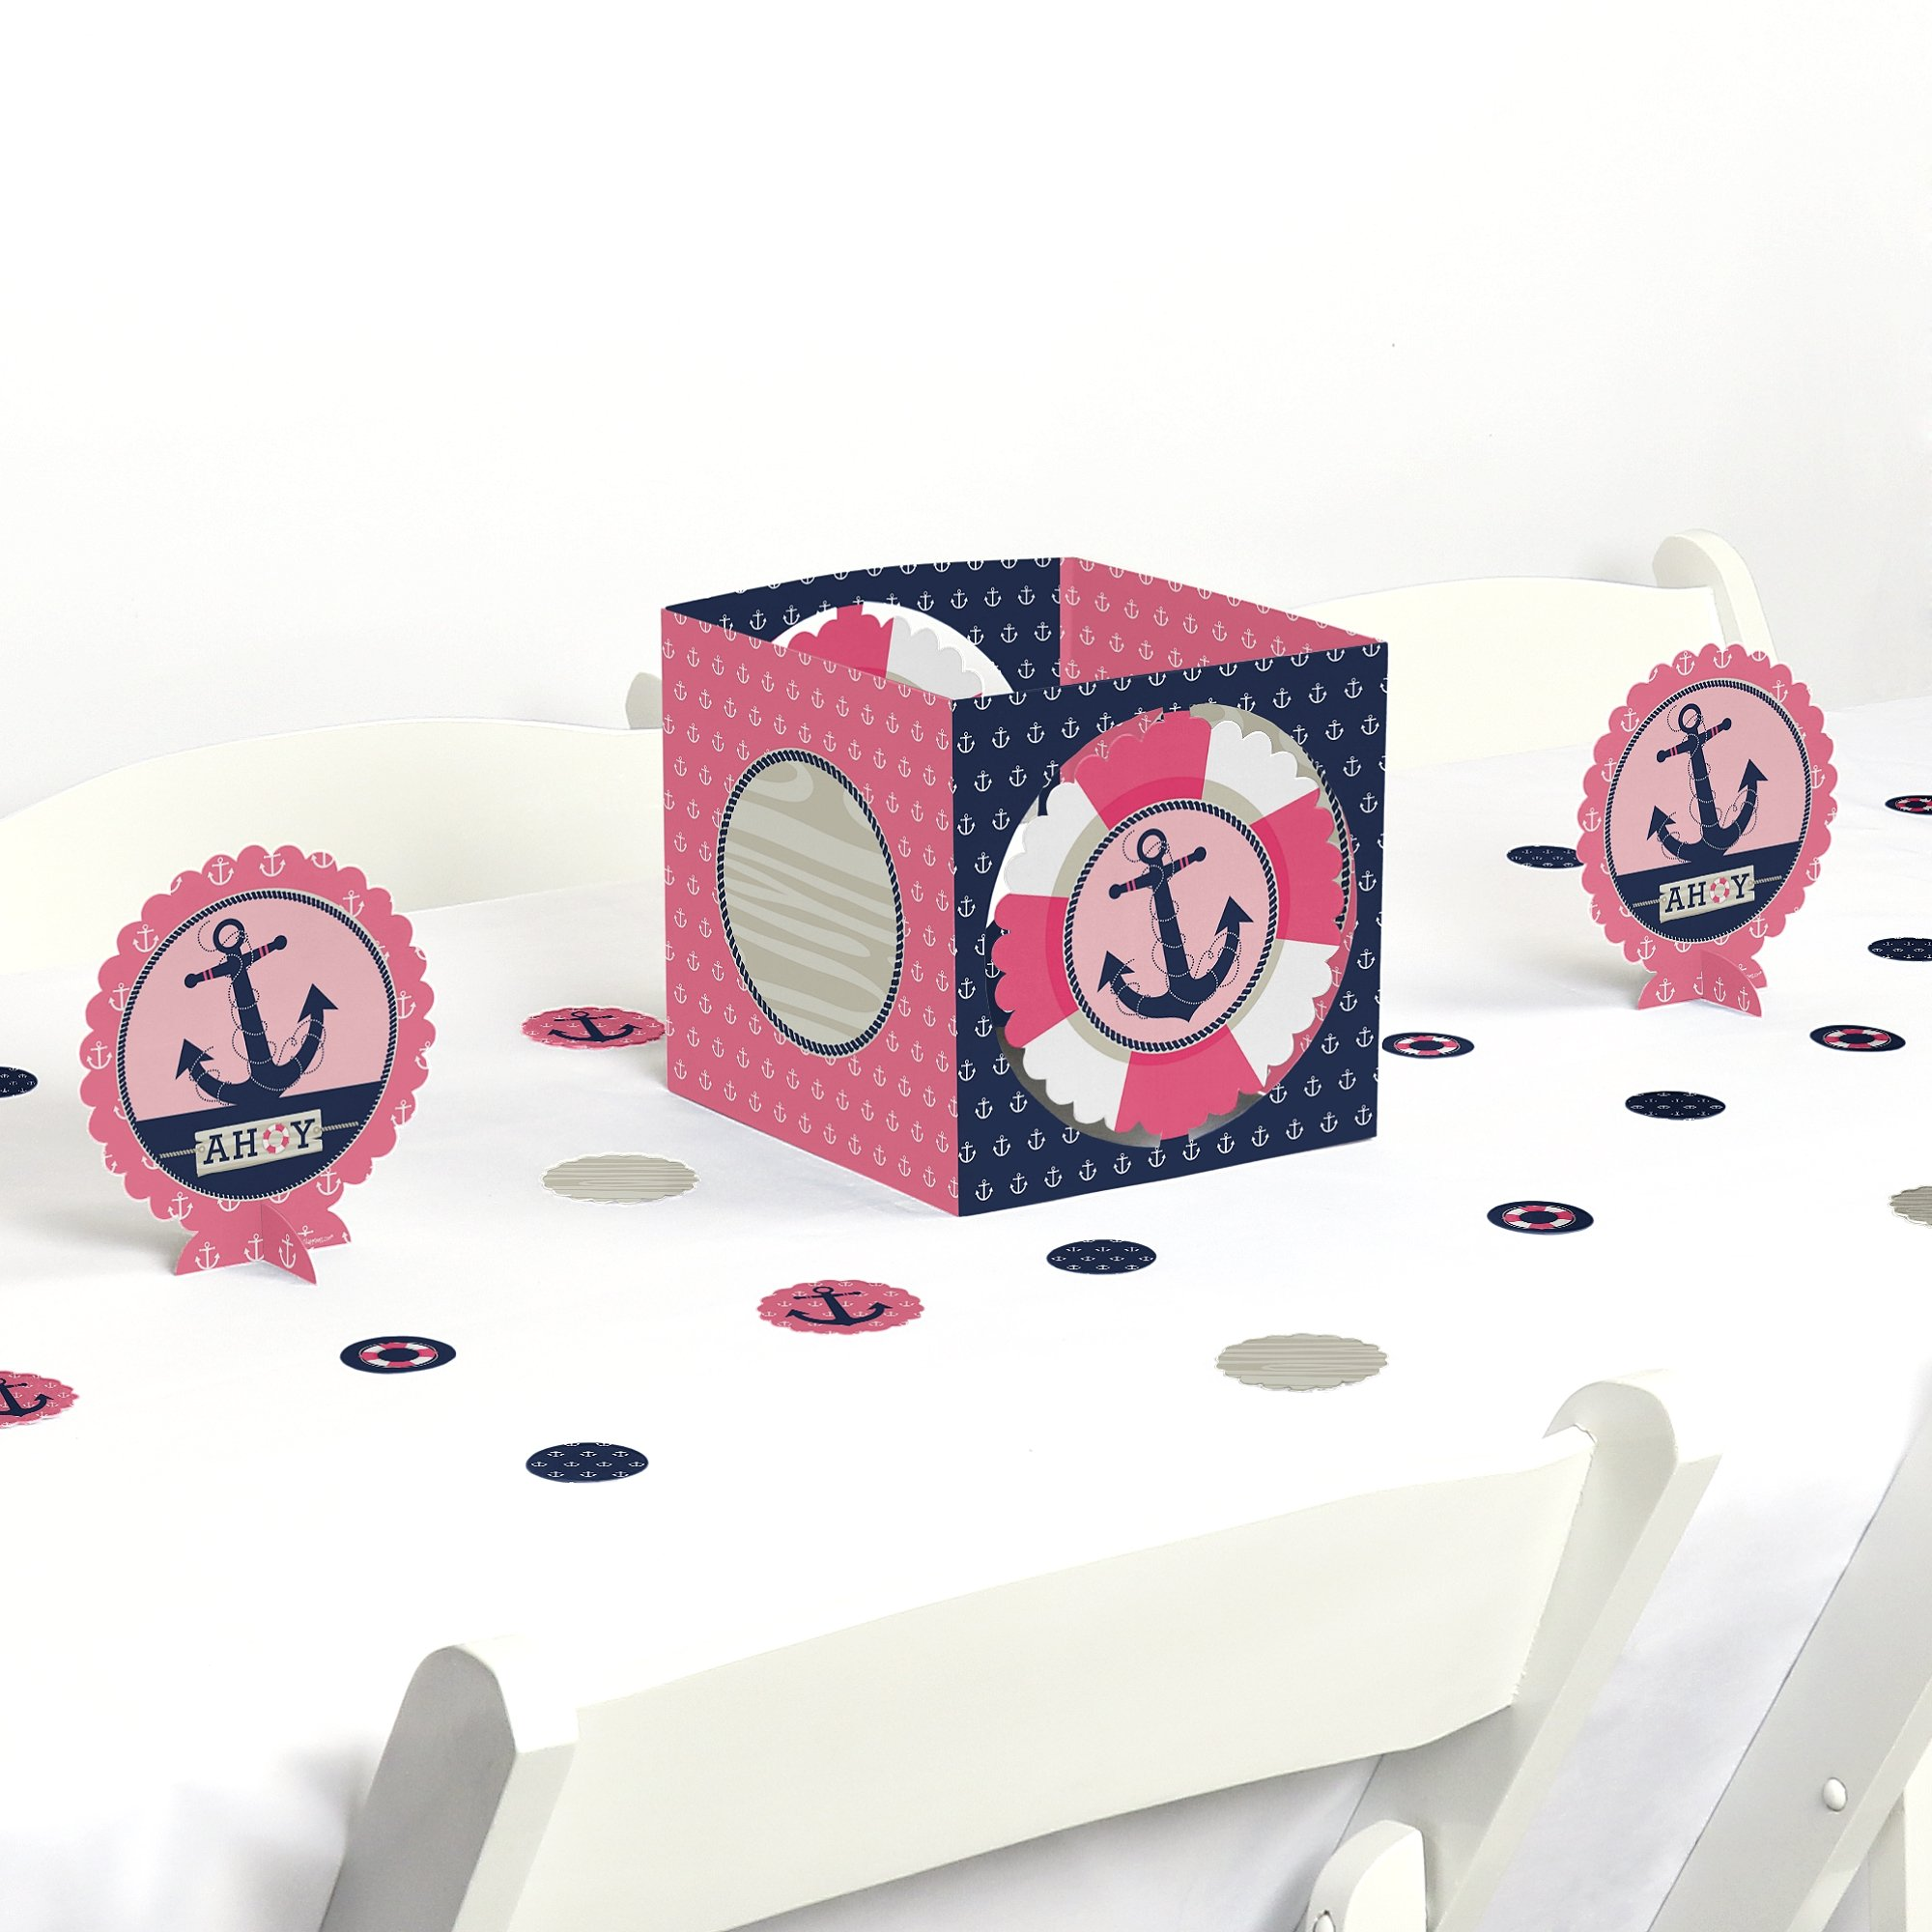 Ahoy - Nautical Girl - Baby Shower or Birthday Party Centerpiece & Table Decoration Kit by Big Dot of Happiness